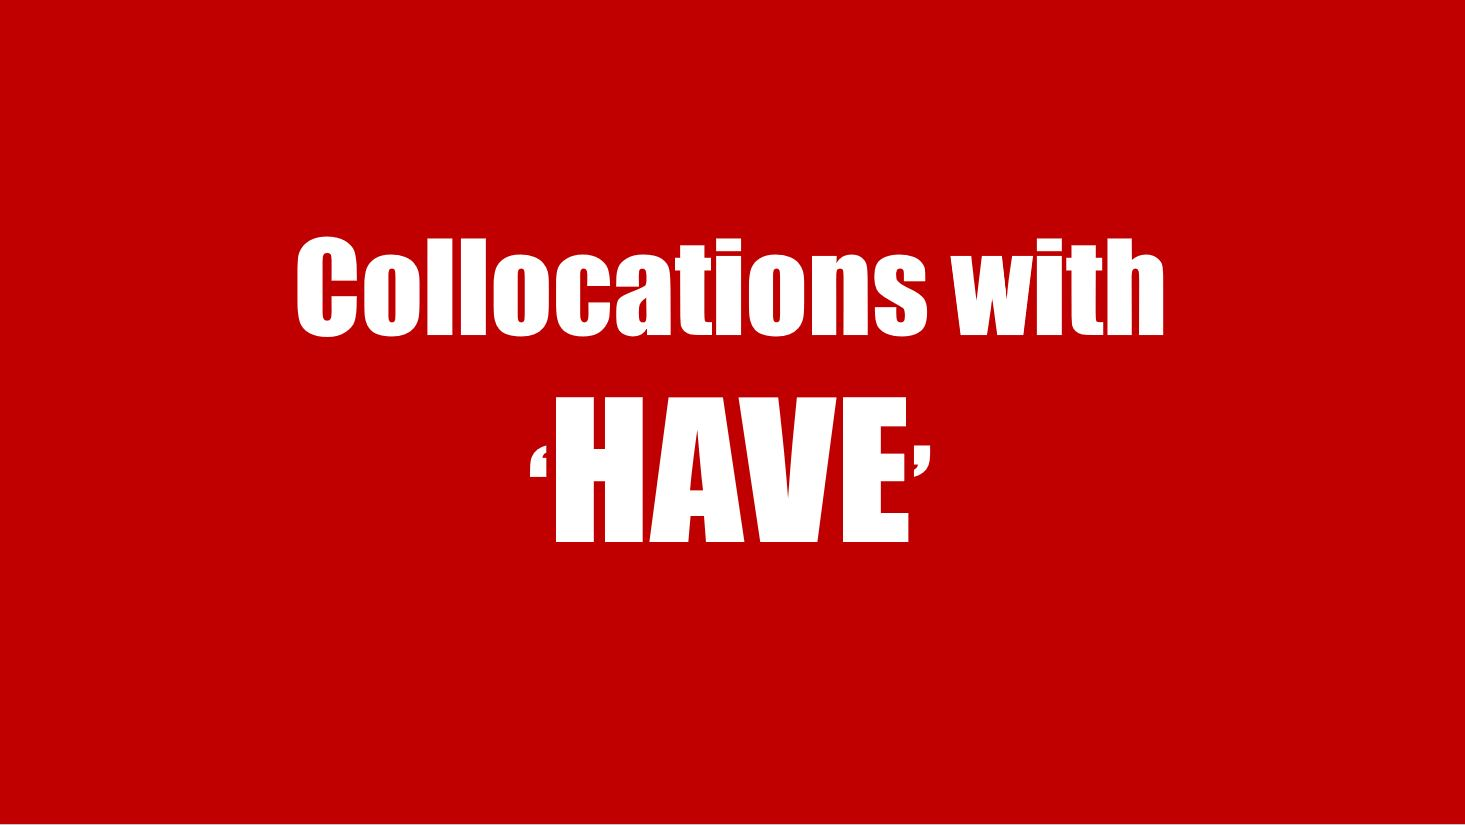 LangGo - Collocation with HAVE: Cụm từ đi với HAVE trong tiếng Anh